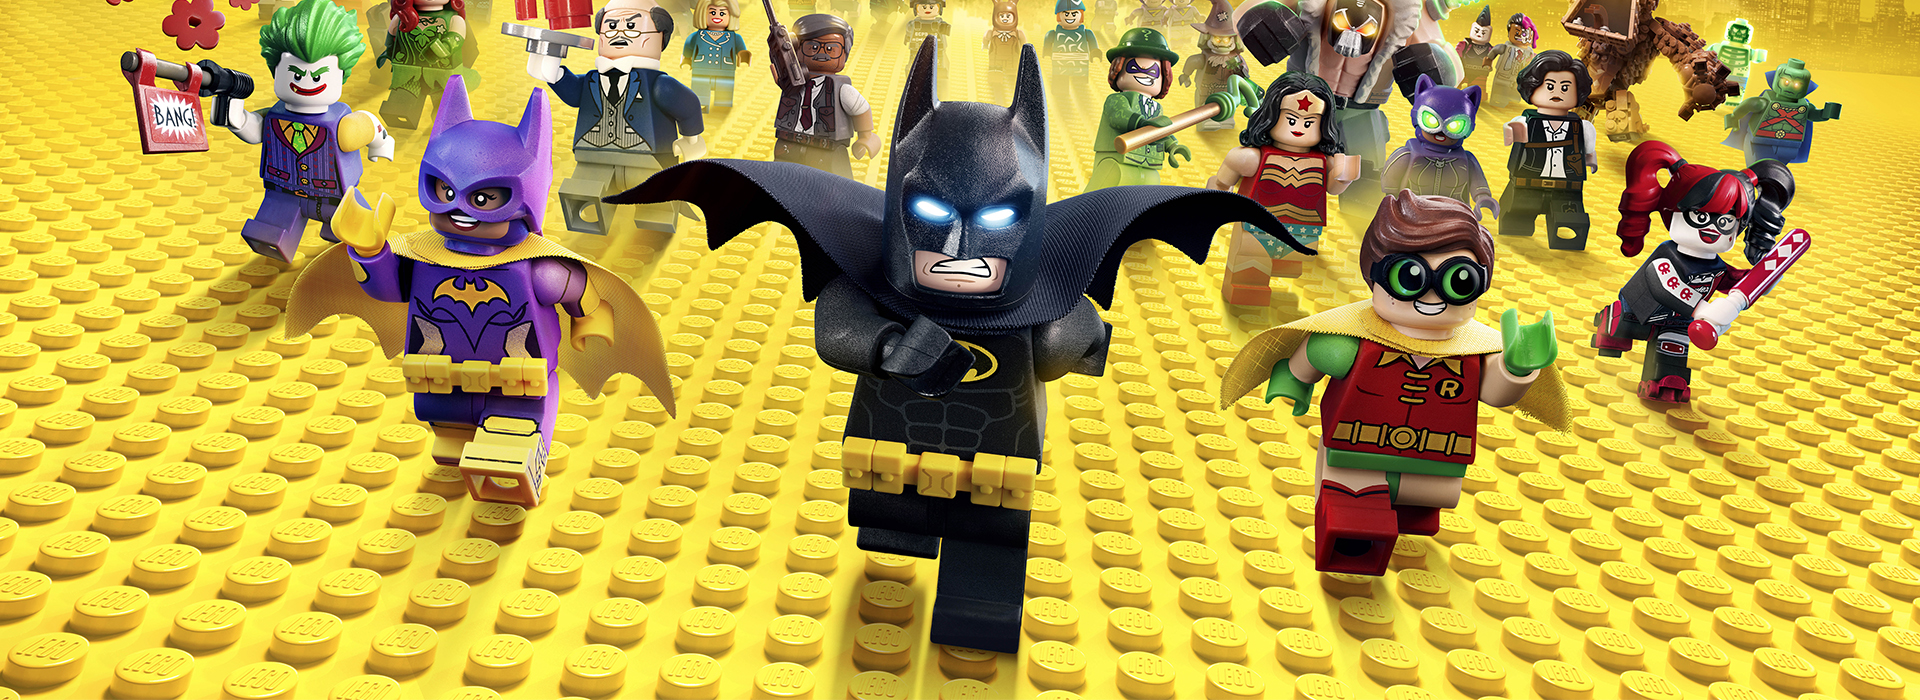 Lego-Batman-Filmi-Slide